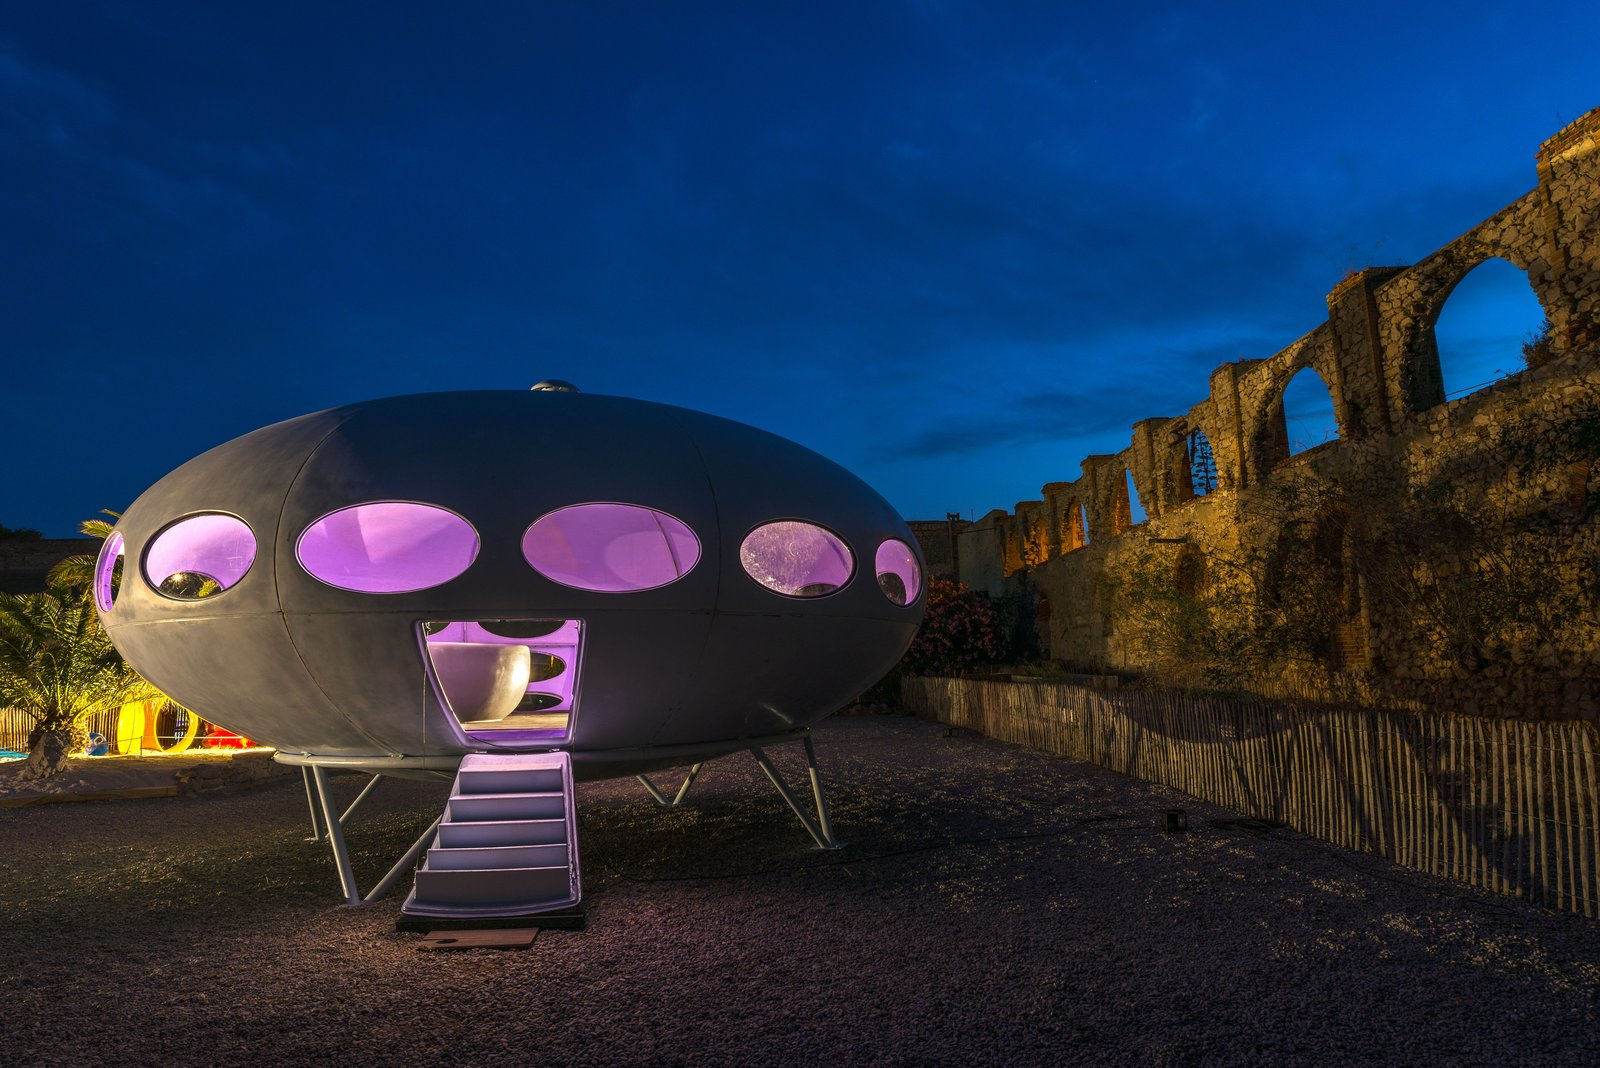 At Utopie Plastic, Futuristic Plastic Homes Make an Appearance at a 19th-Century Metal Factory - Photo 9 of 10